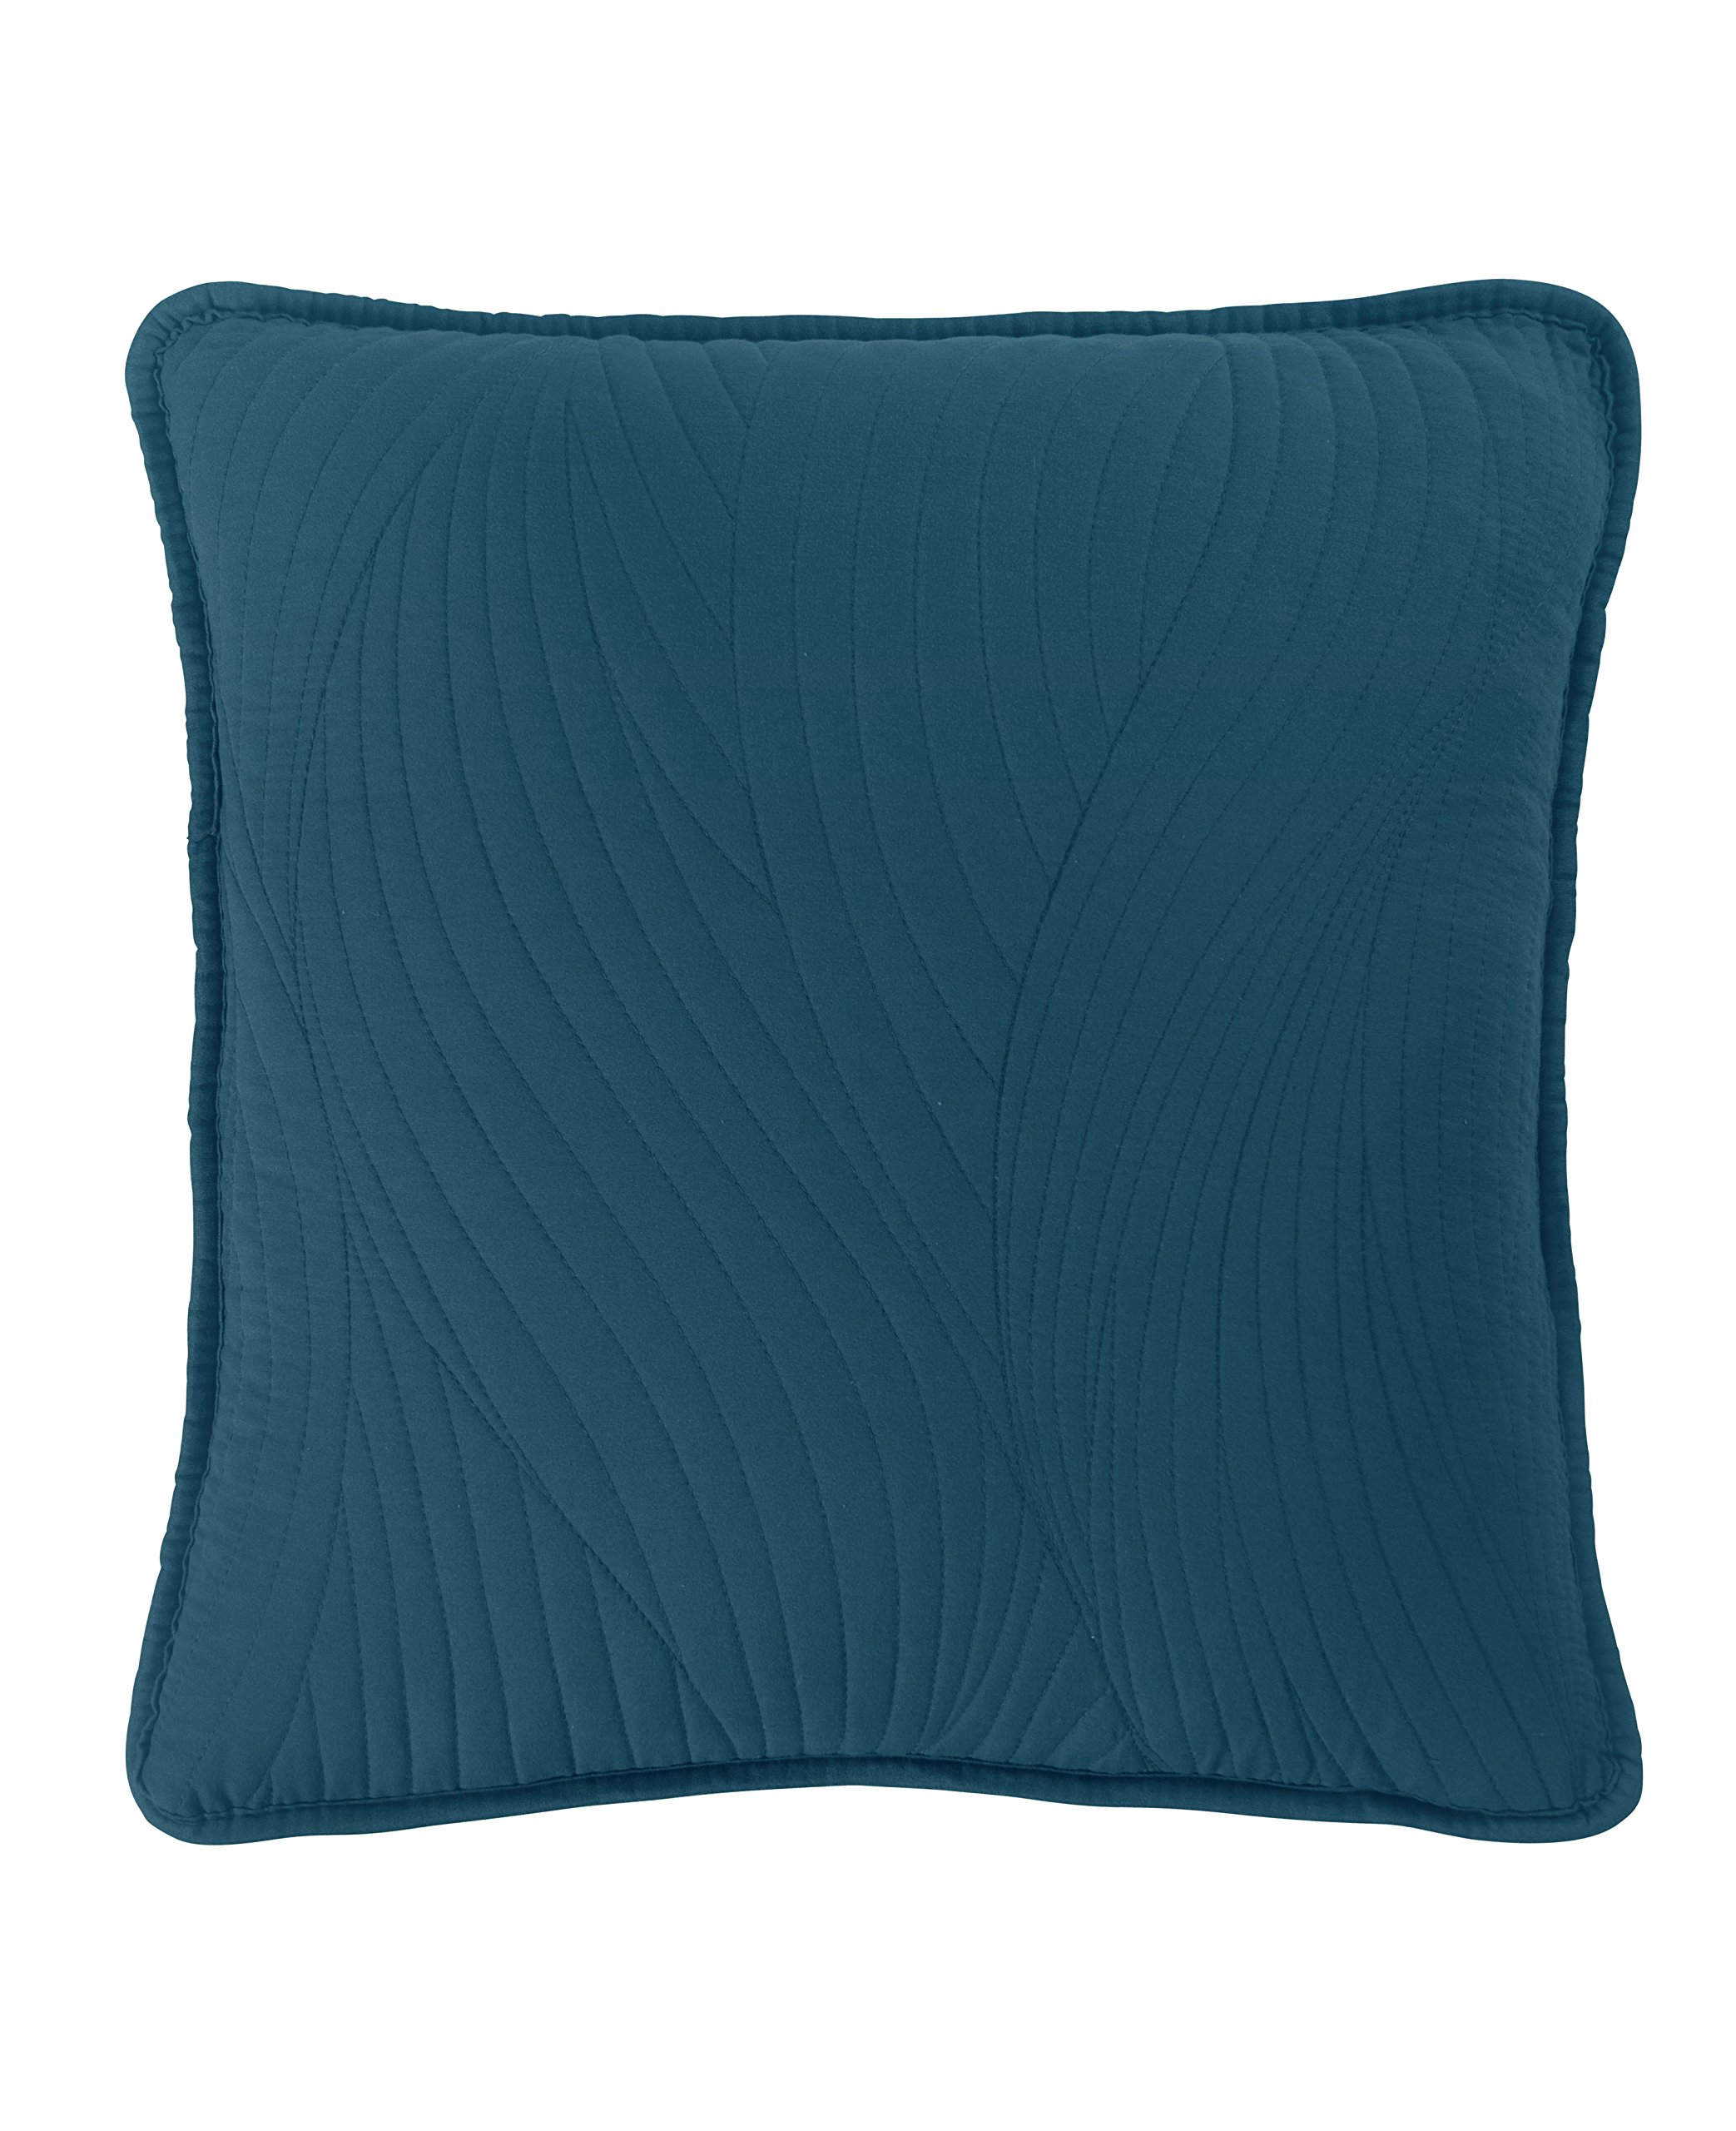 "Brielle Stream Toss Pillow, Square 16"" x 16"", Teal - 1 toss pillow with removable cover Toss pillow measures 16 inches wide, 16 inches tall Coordinates with other Brielle stream products - living-room-soft-furnishings, living-room, decorative-pillows - 81NMUMnElRL -"